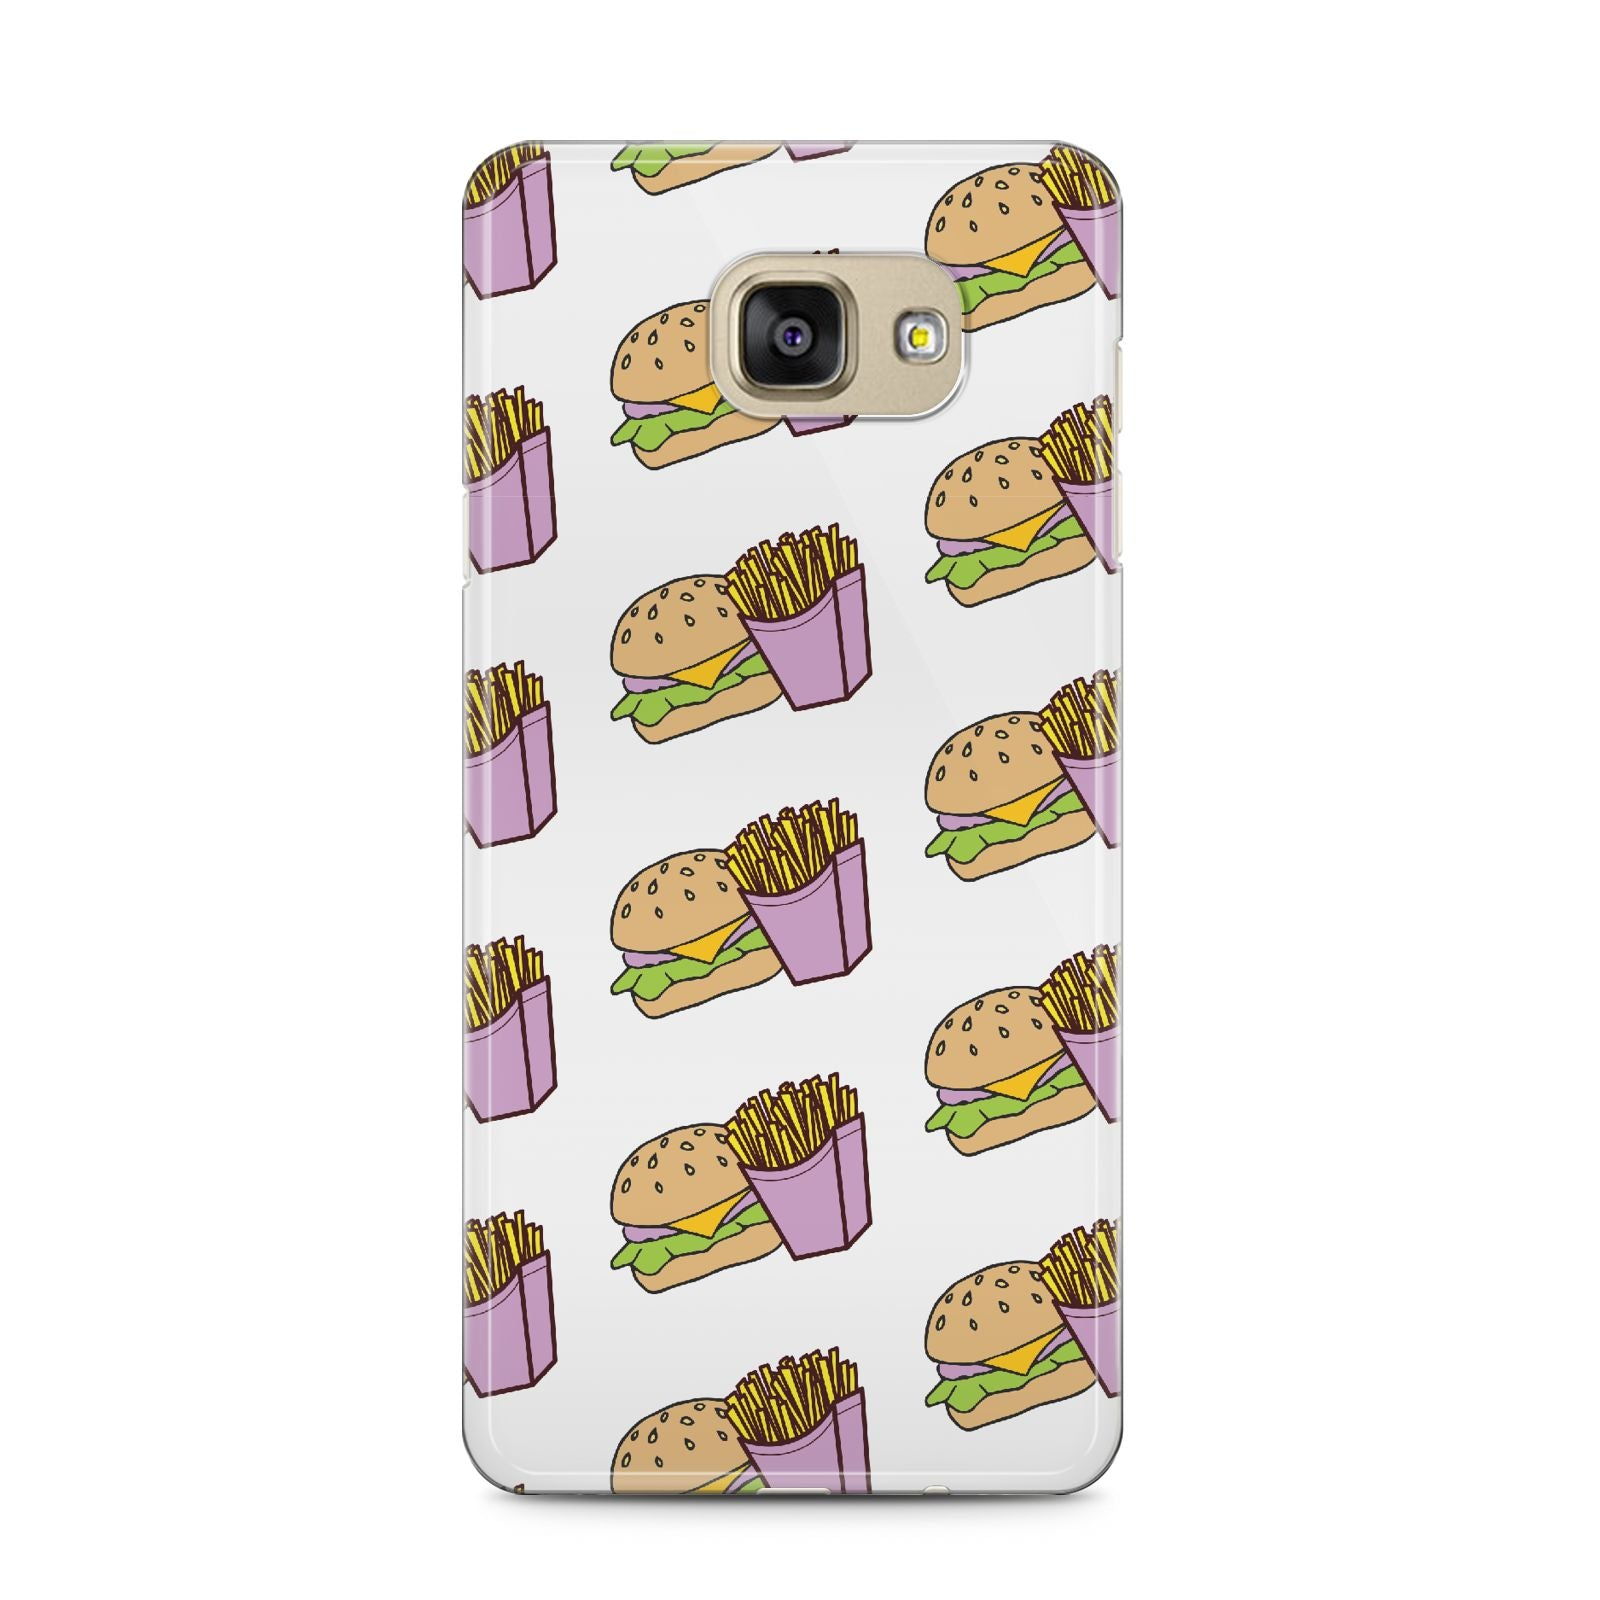 Burger Fries Fast Food Samsung Galaxy A5 2016 Case on gold phone